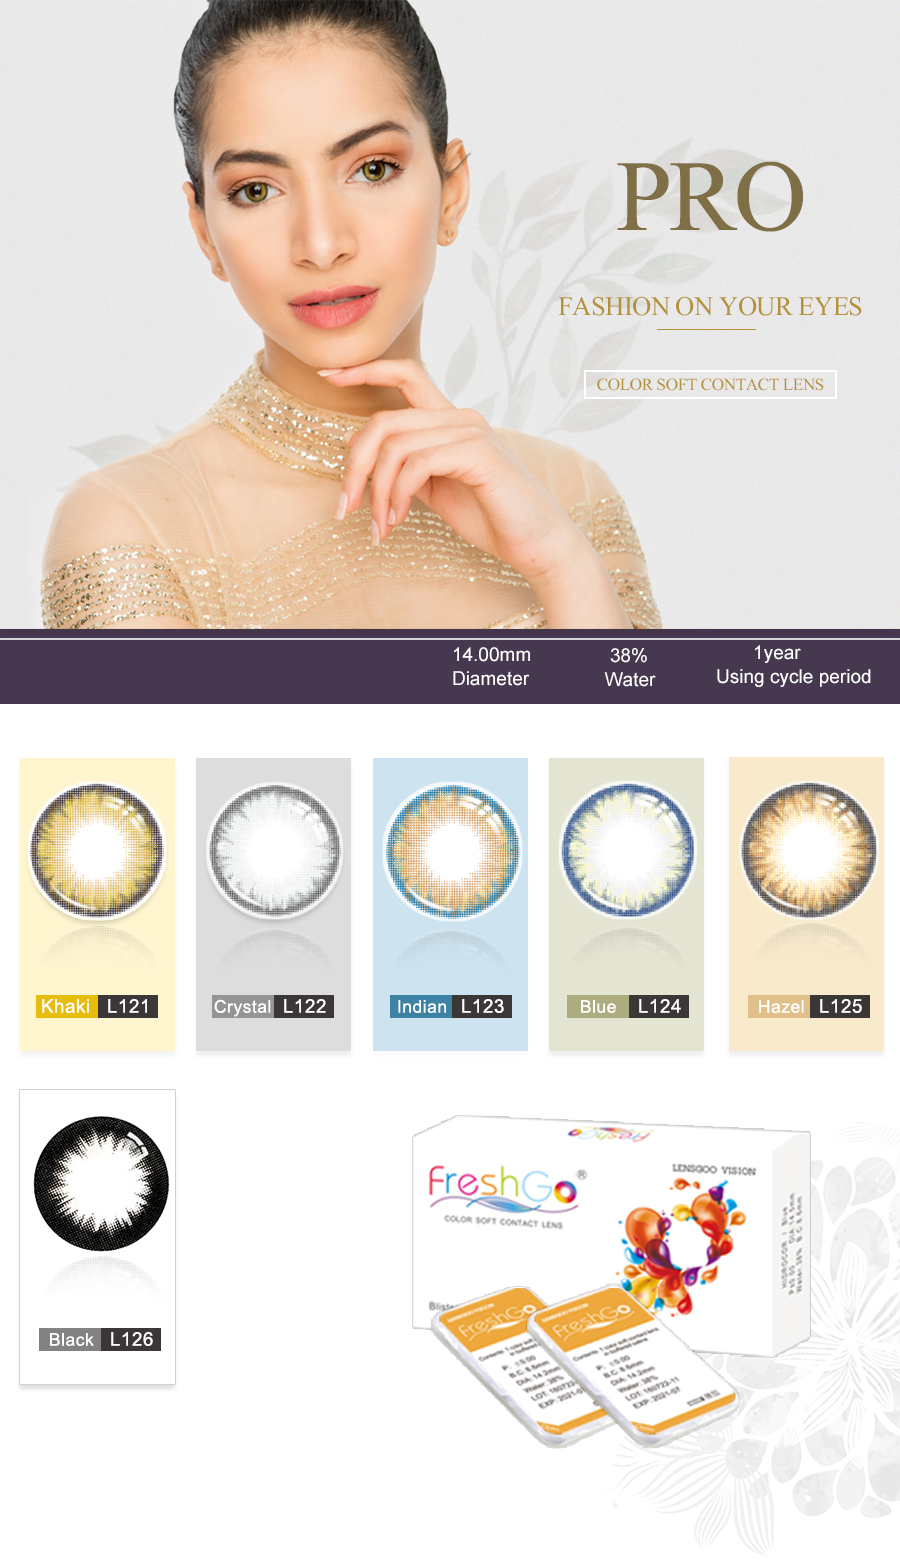 Freshgo wholesale high quality ultrathin comfortable soft natural color eye contact lenses